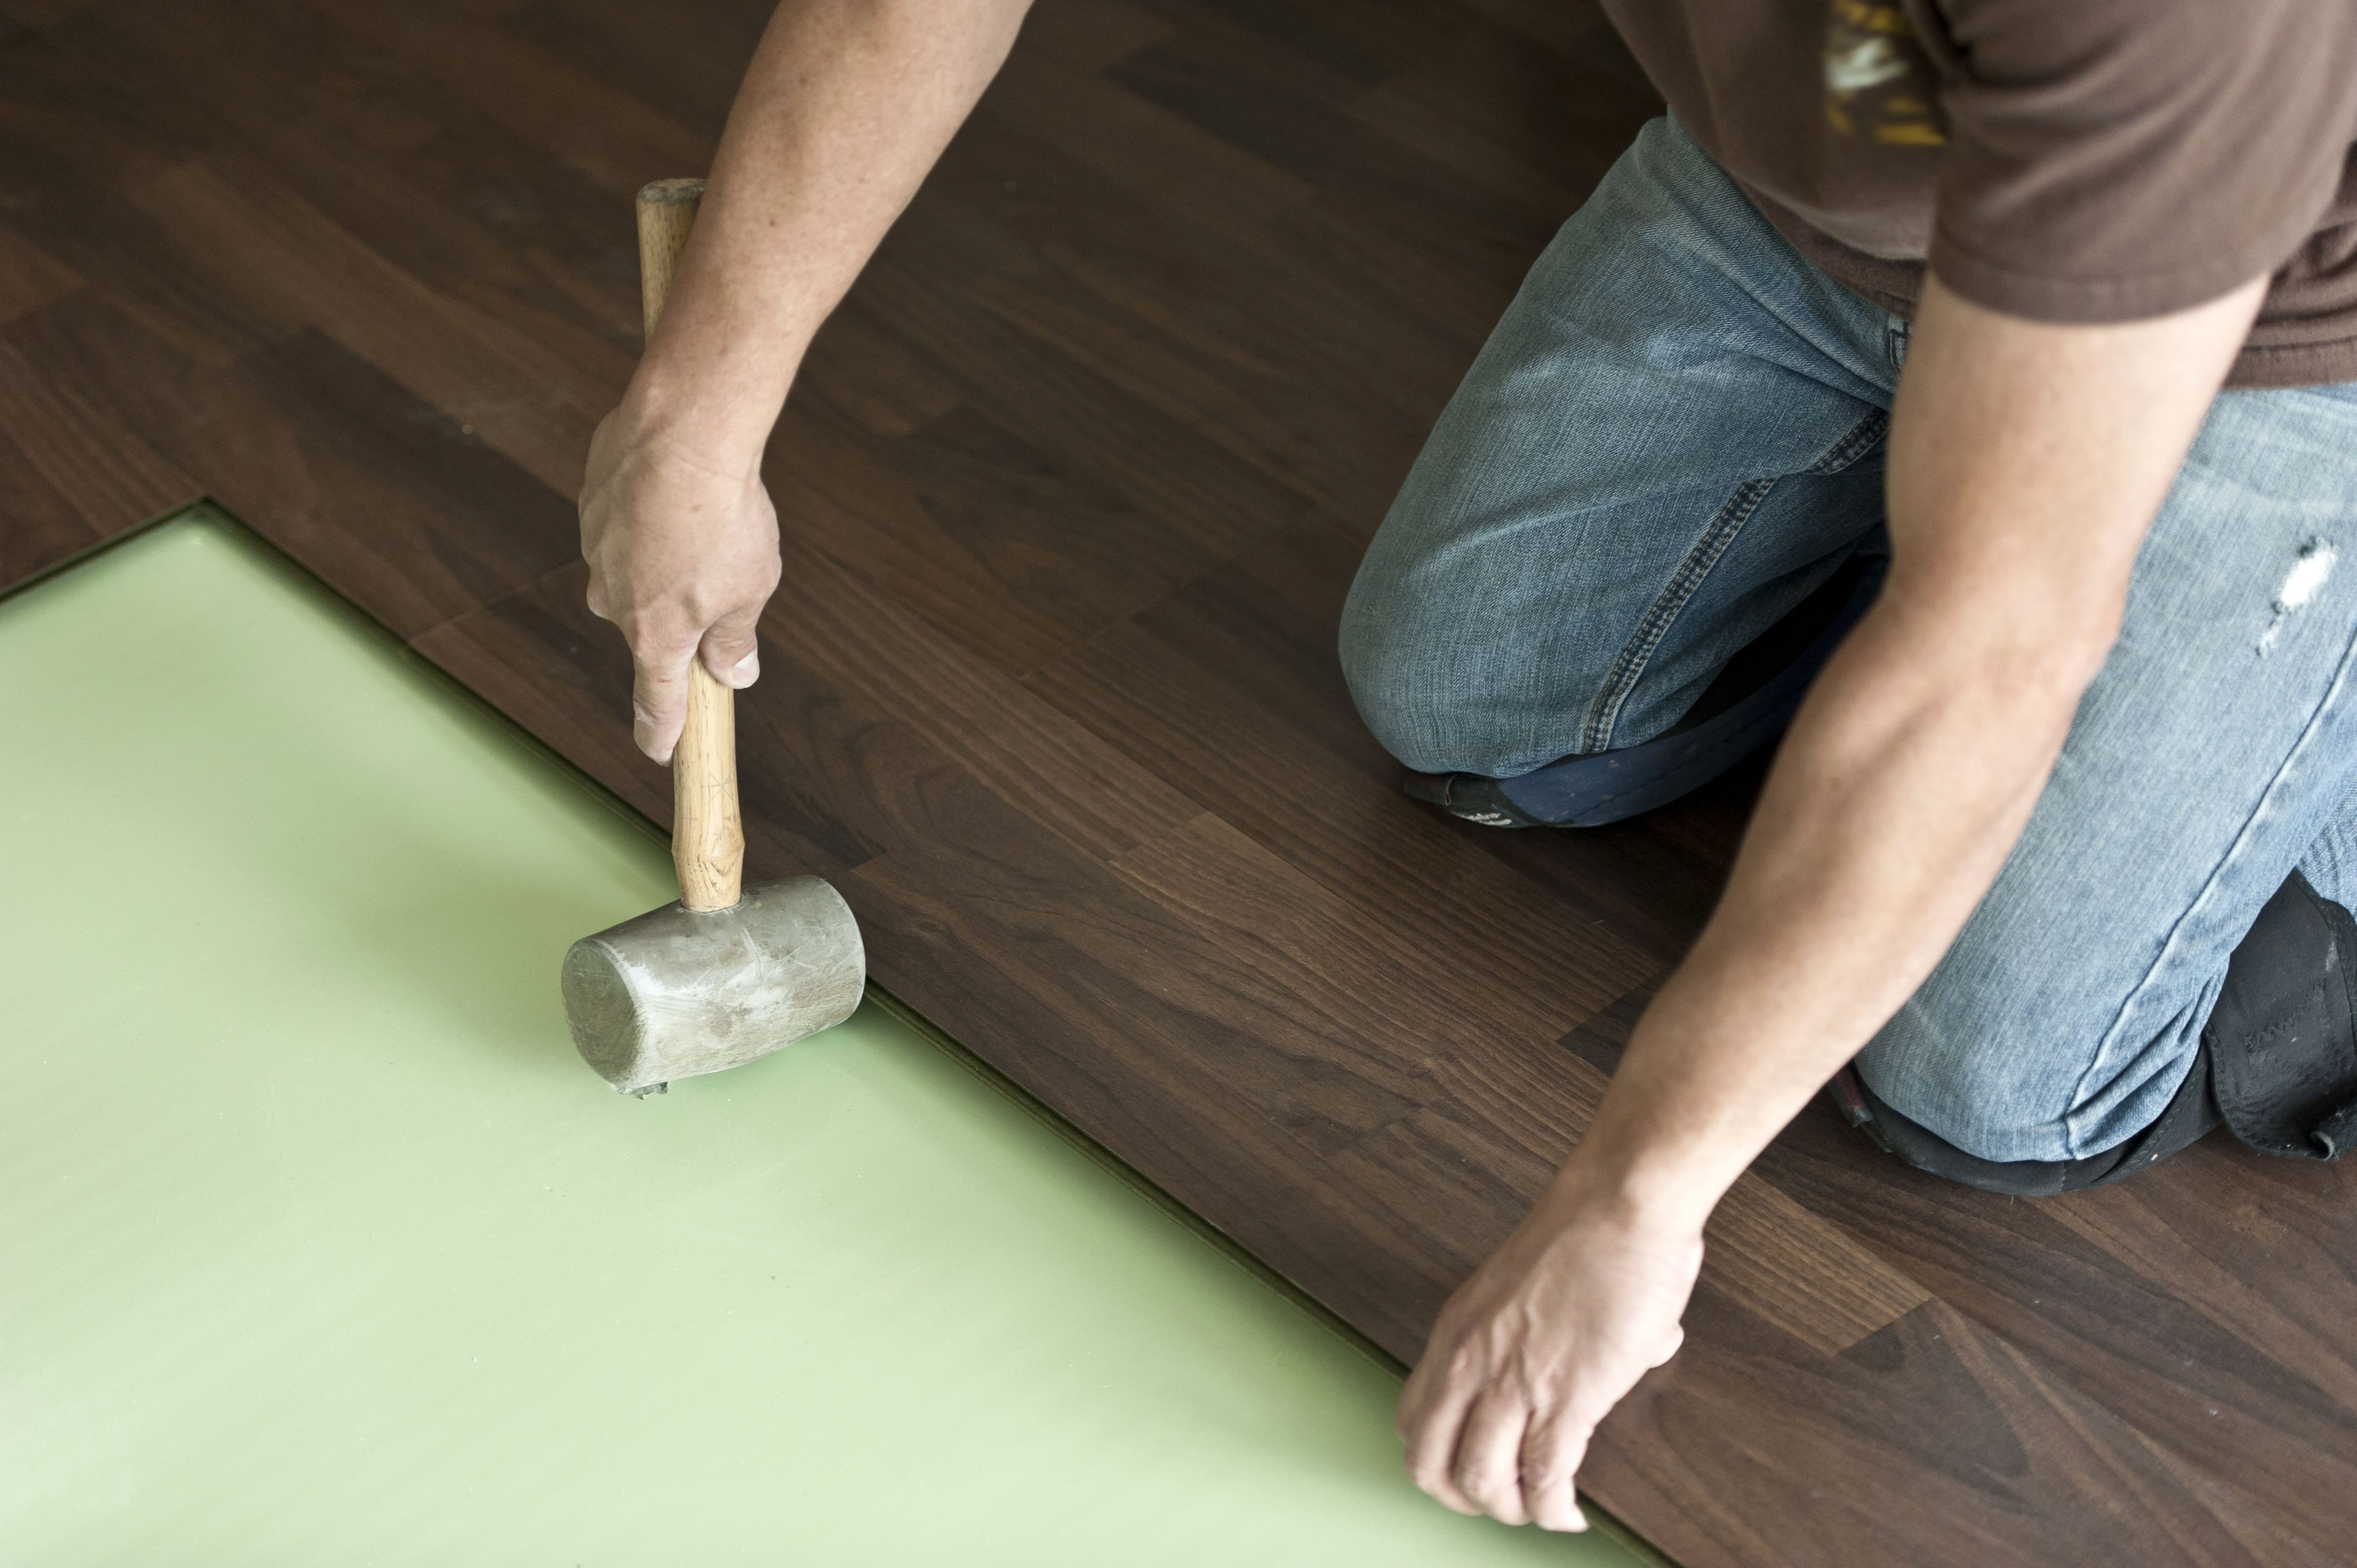 easy click hardwood flooring of can a foam pad be use under solid hardwood flooring with installing hardwood floor 155149312 57e967d45f9b586c35ade84a